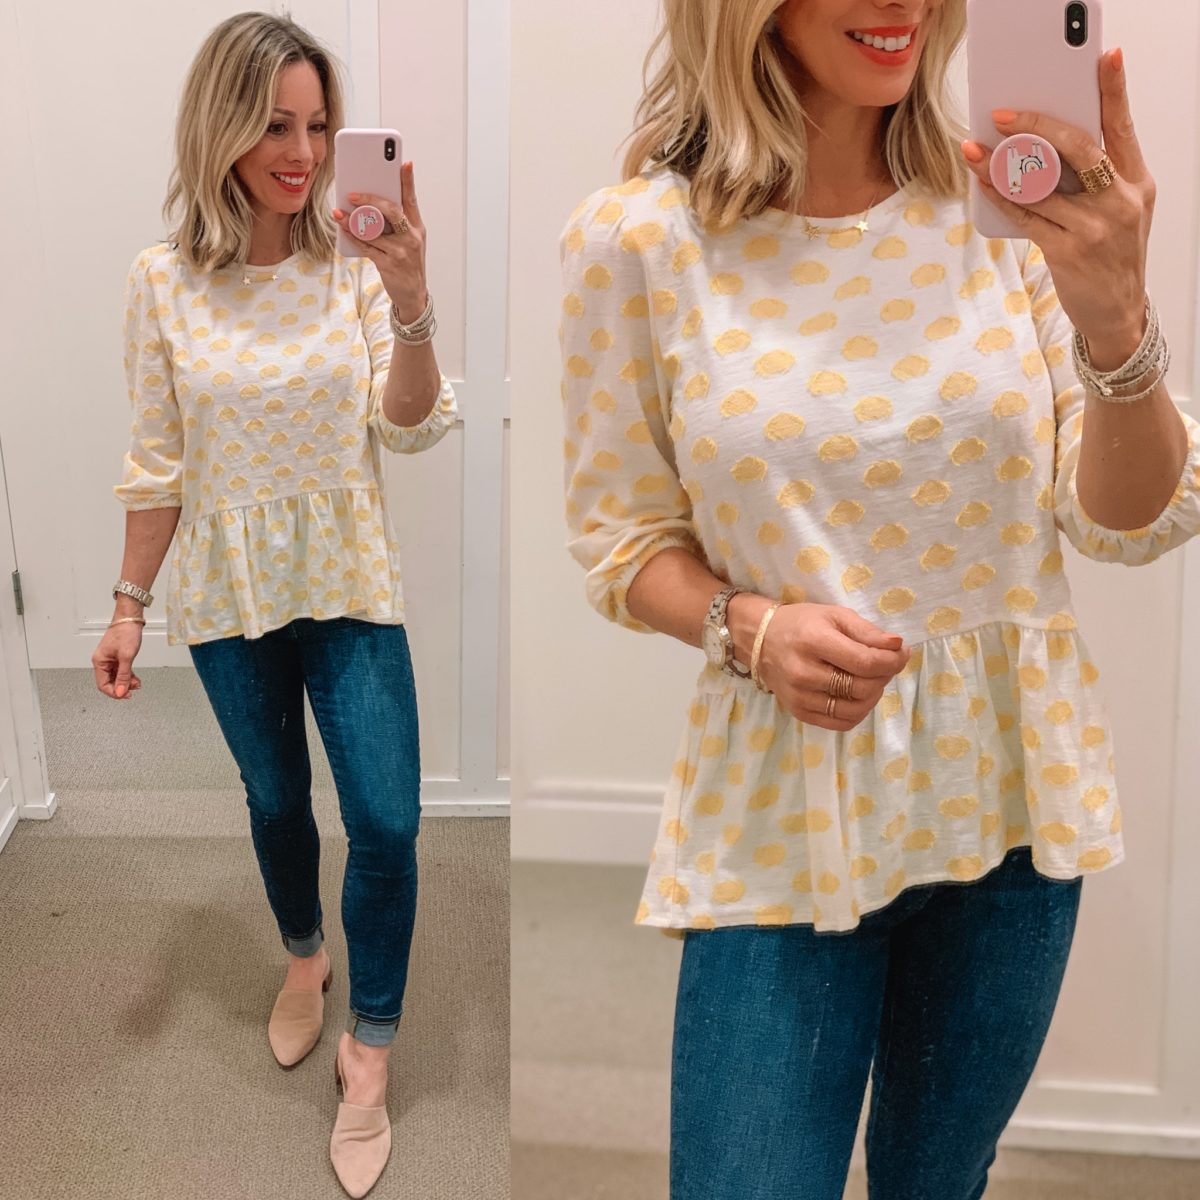 Yellow Polka Dot Peplum Top, Skinny Jeans, Mules